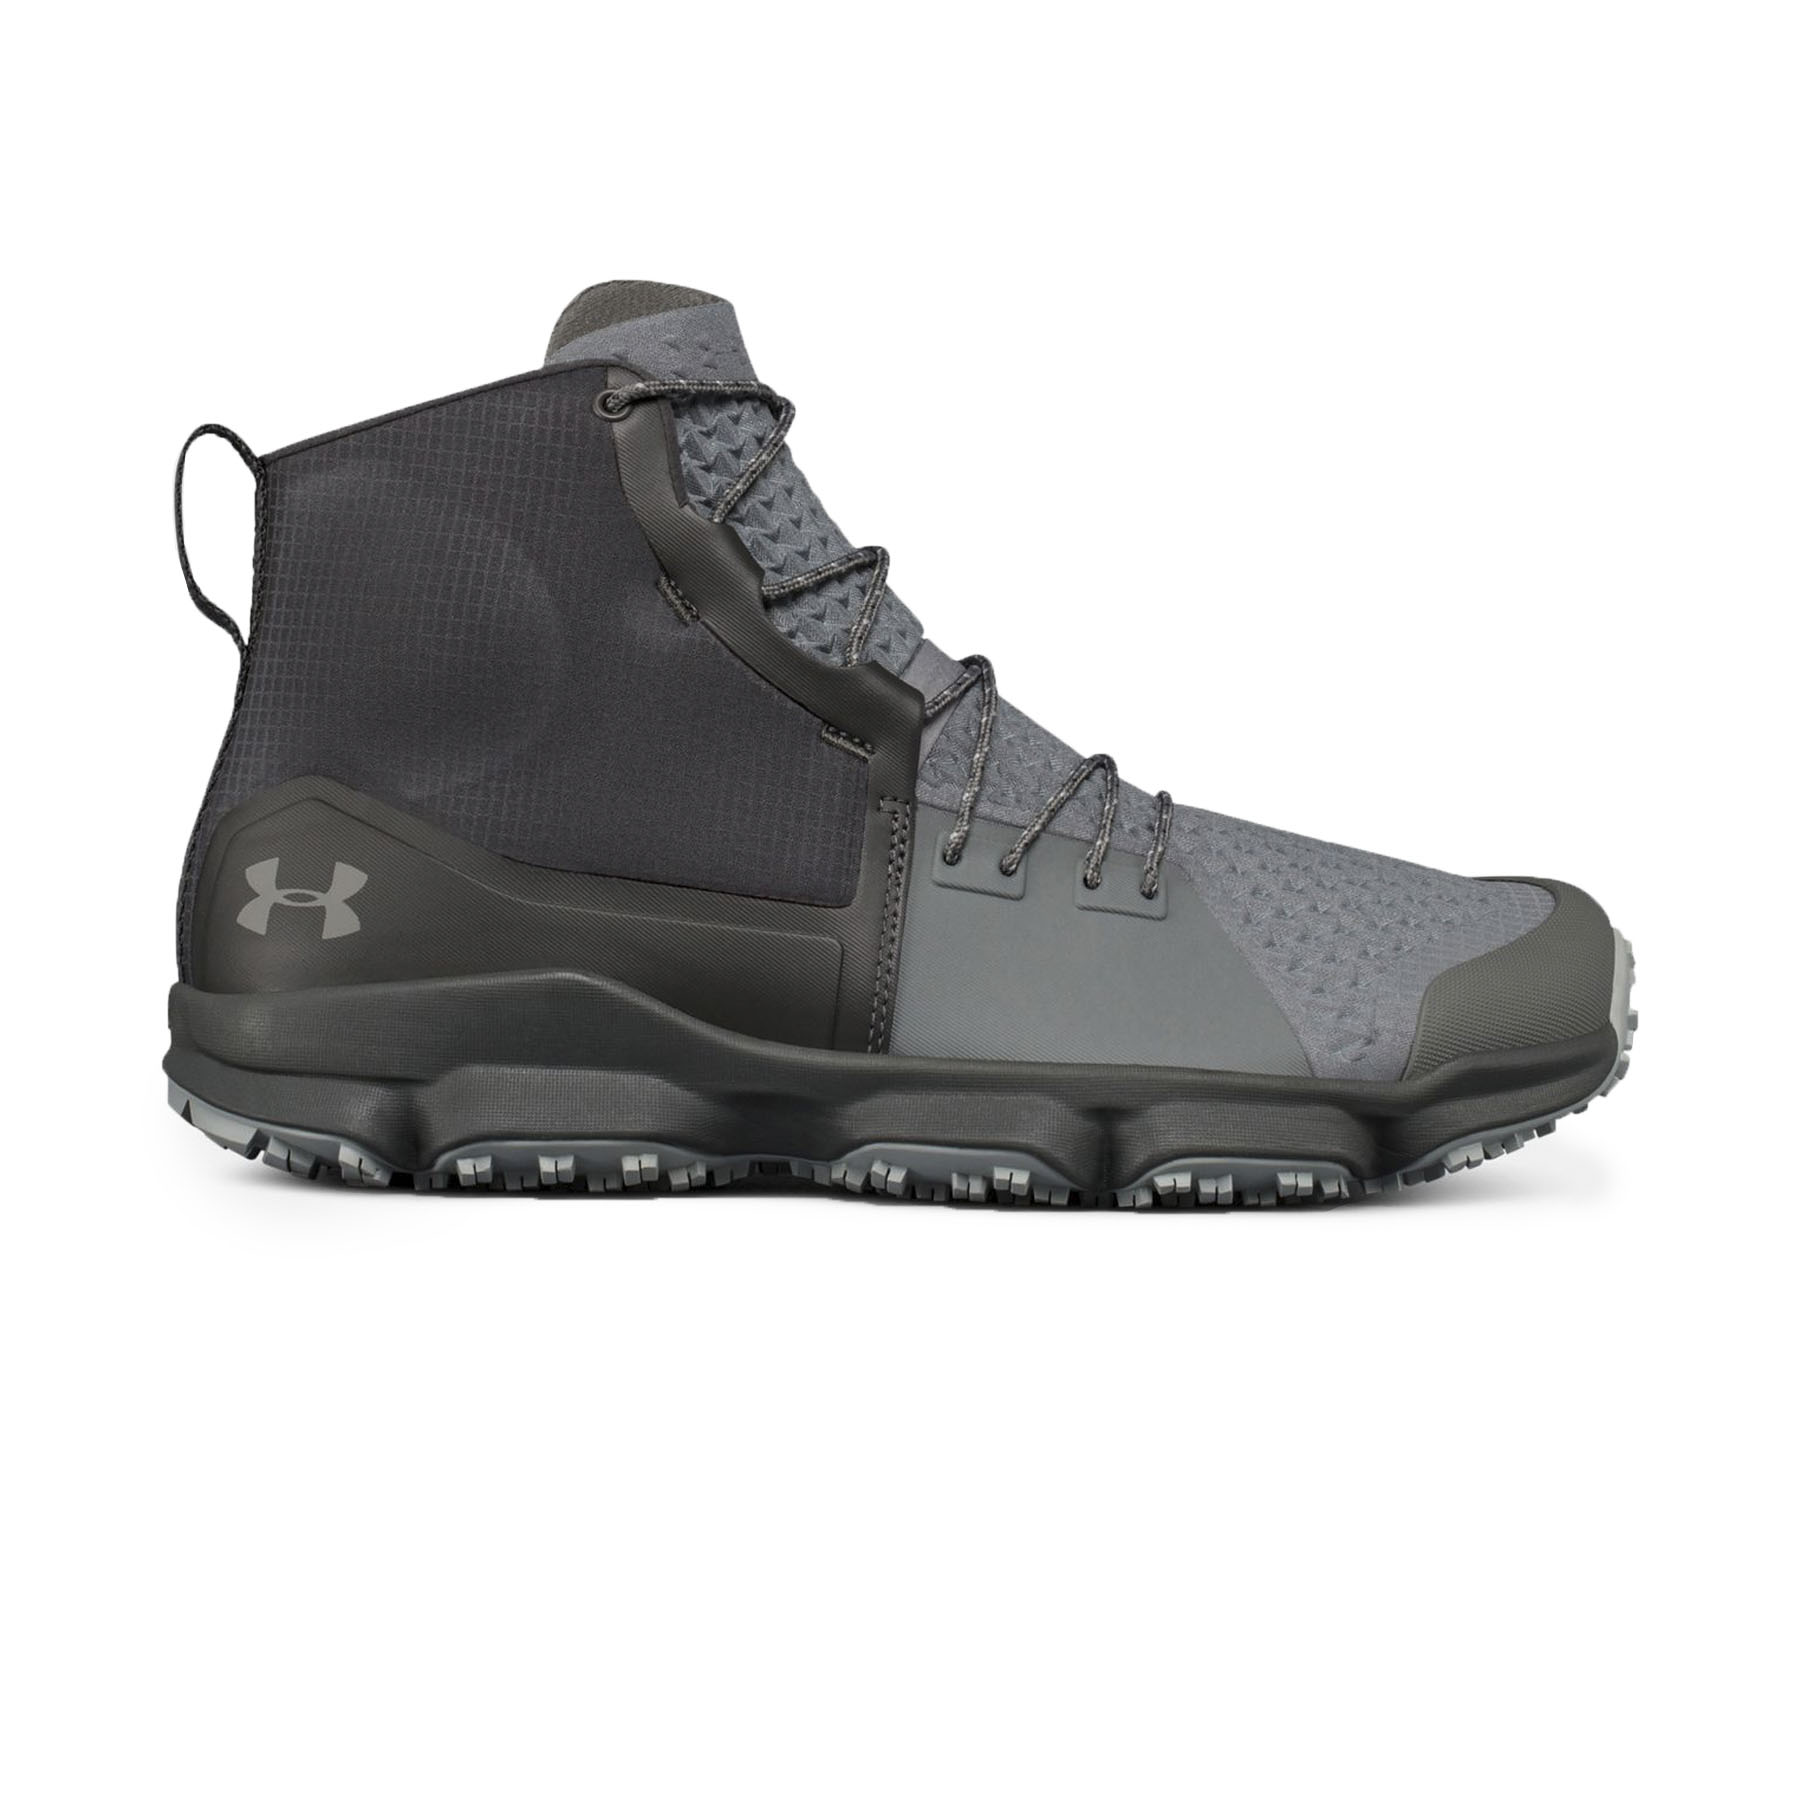 3179ddd3f8f Under Armour Speed Fit 2.0 Hiking Shoes.